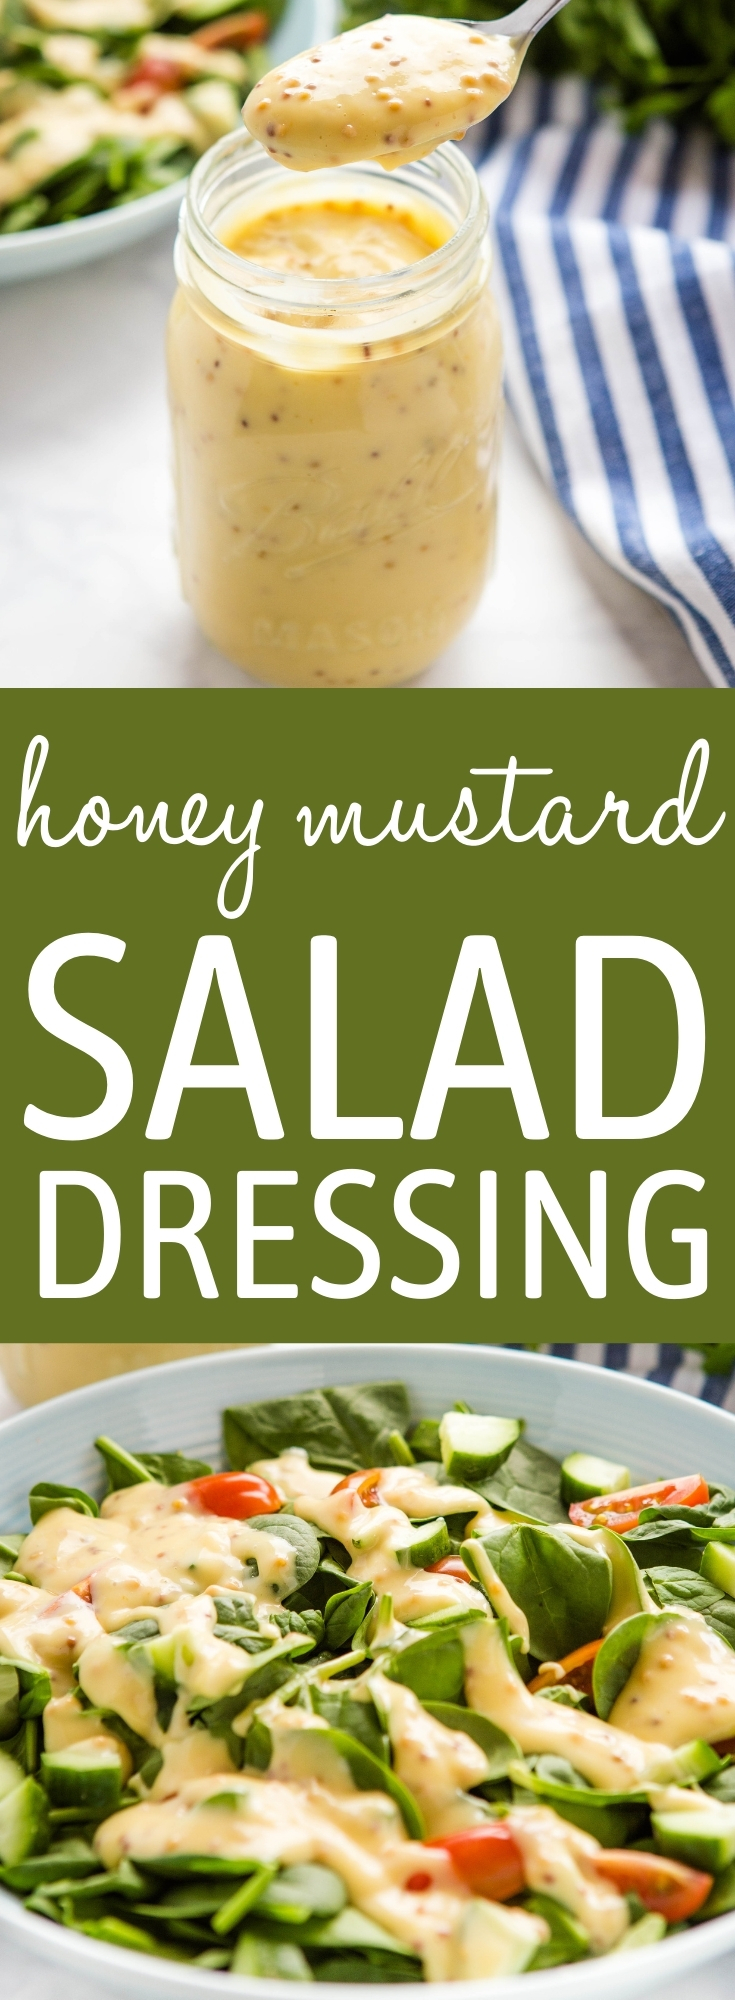 This Honey Mustard Salad Dressing is tangy, creamy and sweet and it's so easy to make with only 5 simple ingredients! Perfect for all your favourite salads! Recipe from thebusybaker.ca! #honeymustard #saladdressing #homemade #homemadedressing #salad #healthy #mustard via @busybakerblog